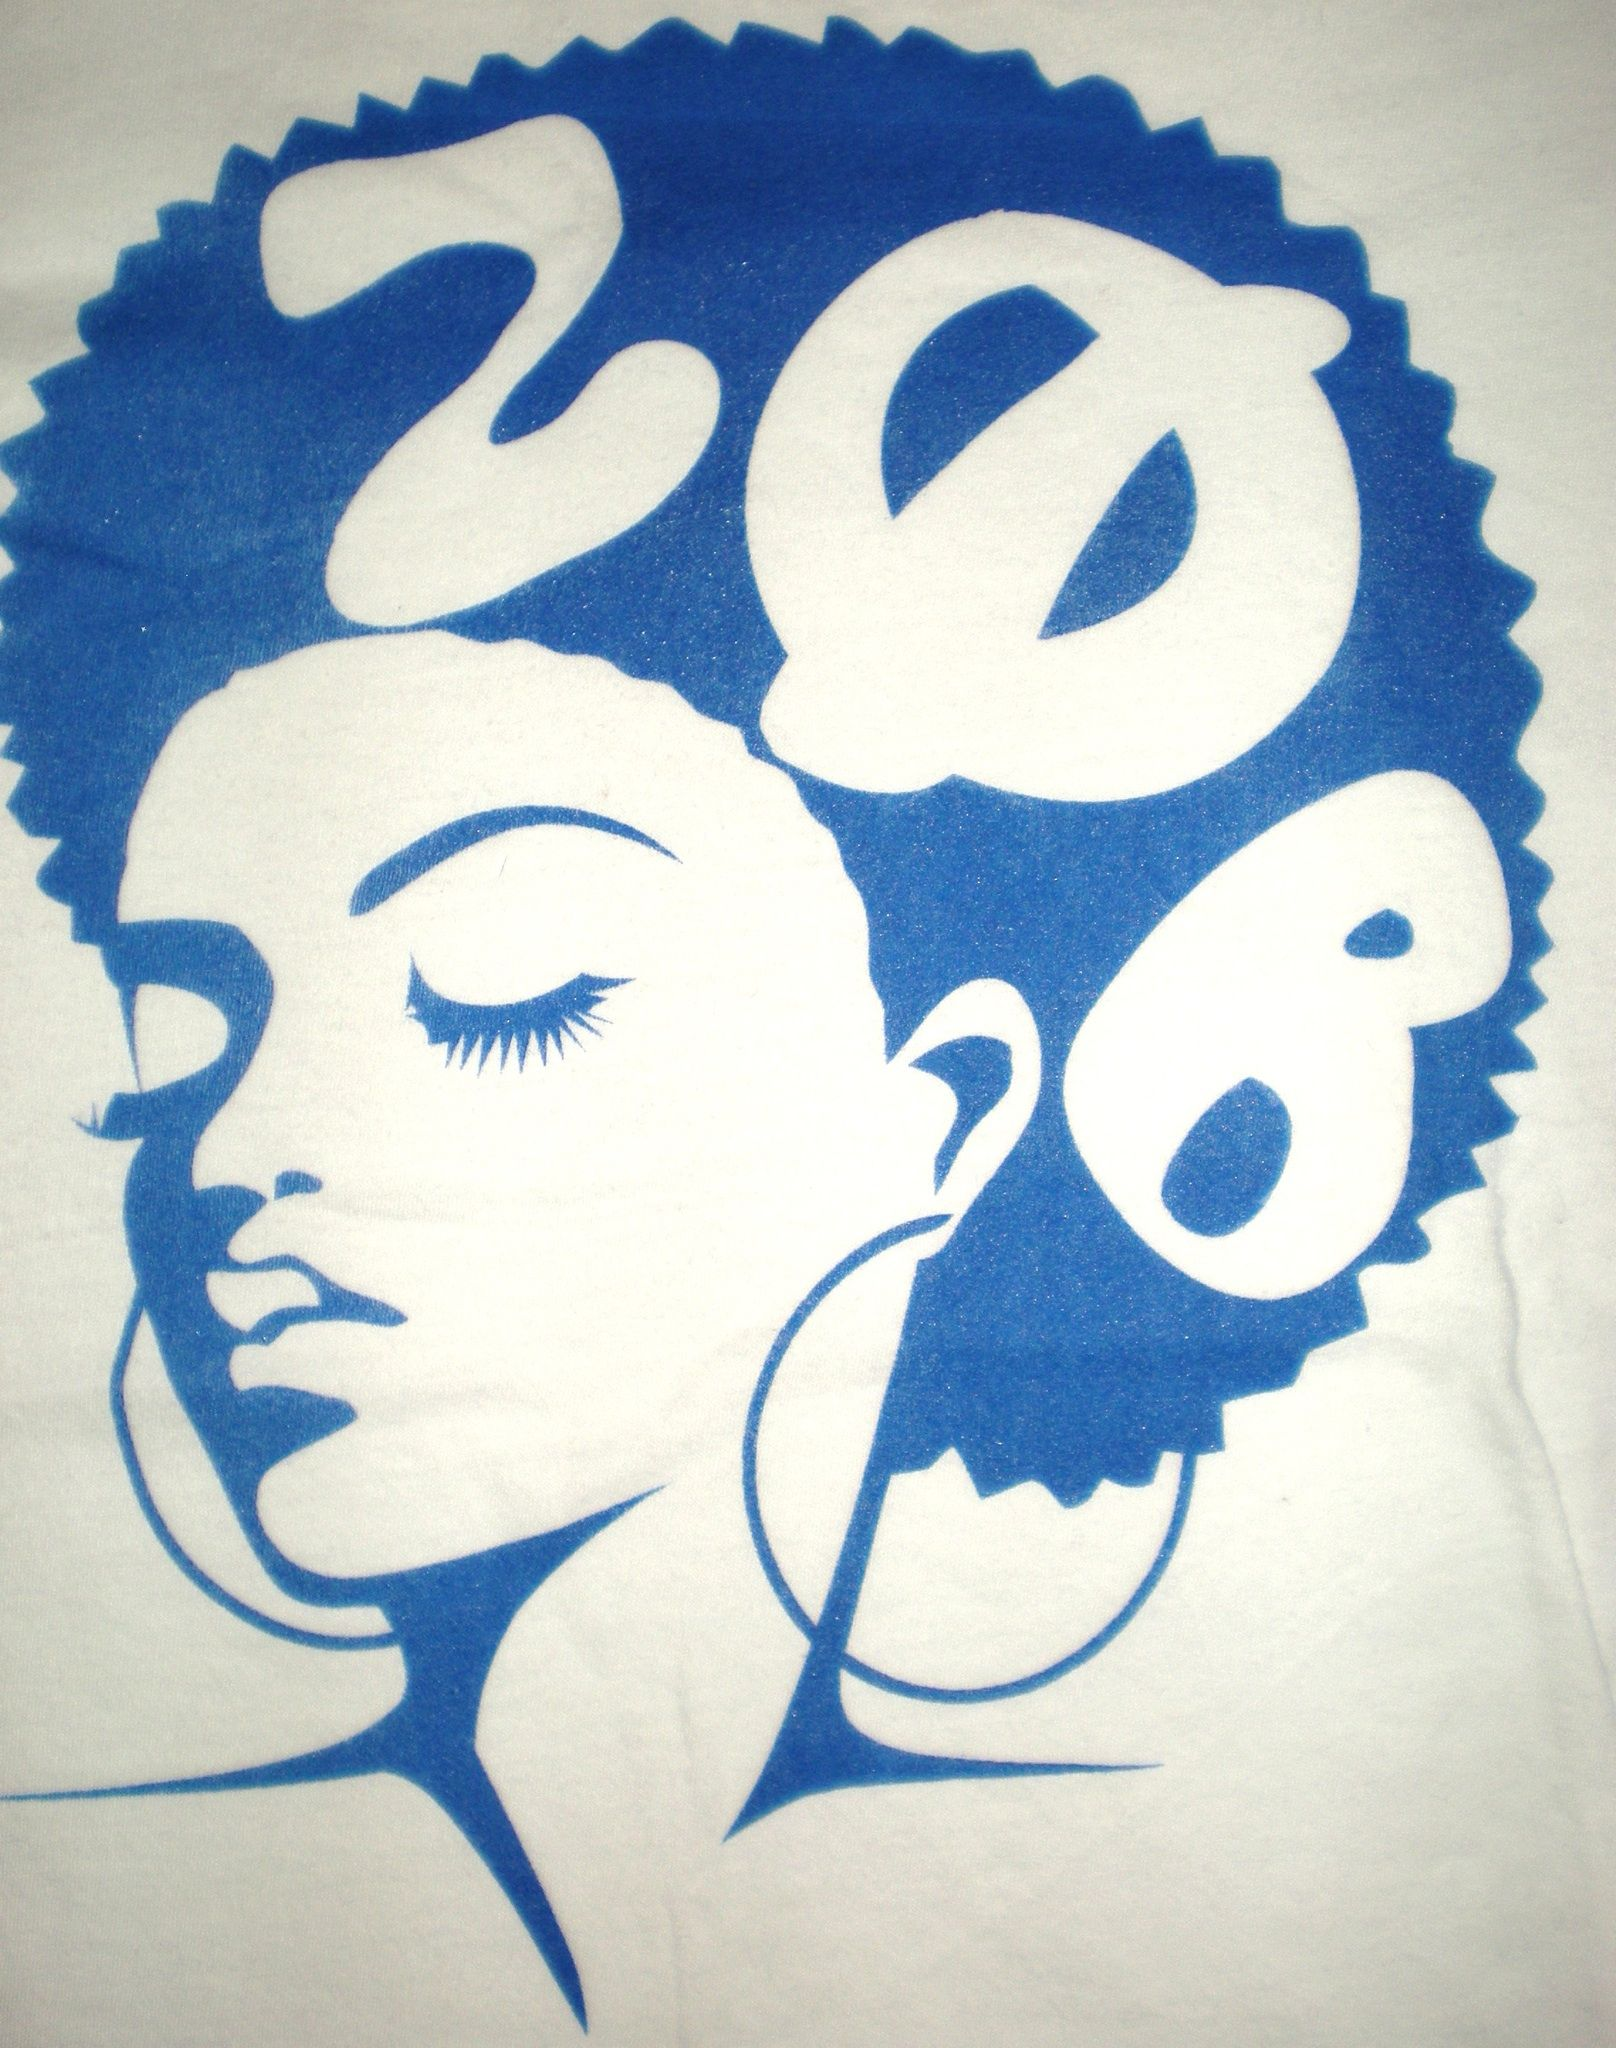 Zeta phi beta fitted t shirts available from d list check out our zeta phi beta fitted t shirts available from d list check out our page buycottarizona